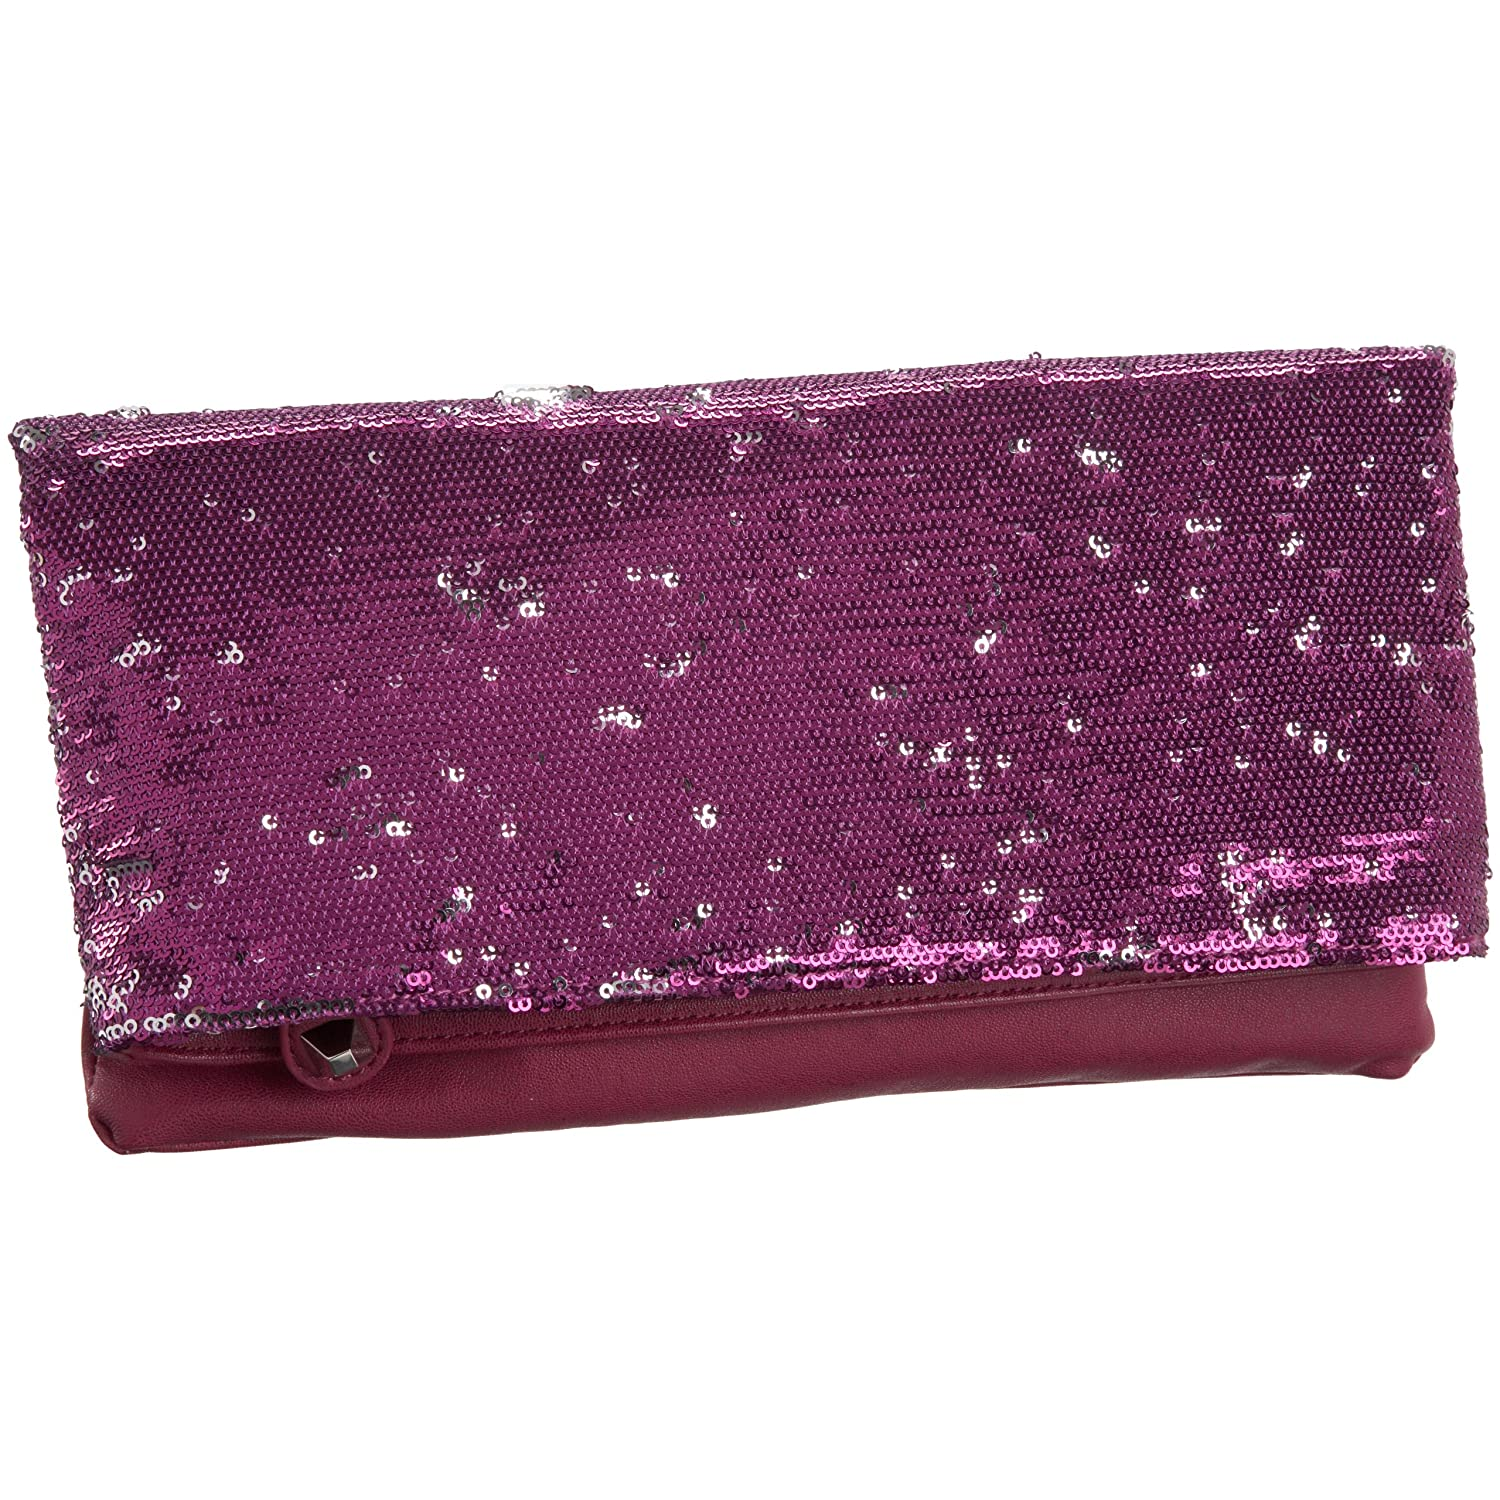 BCBGeneration - Molly Sequined Fold-Over Clutch :  sequined clutch foldover clutch bag clutch